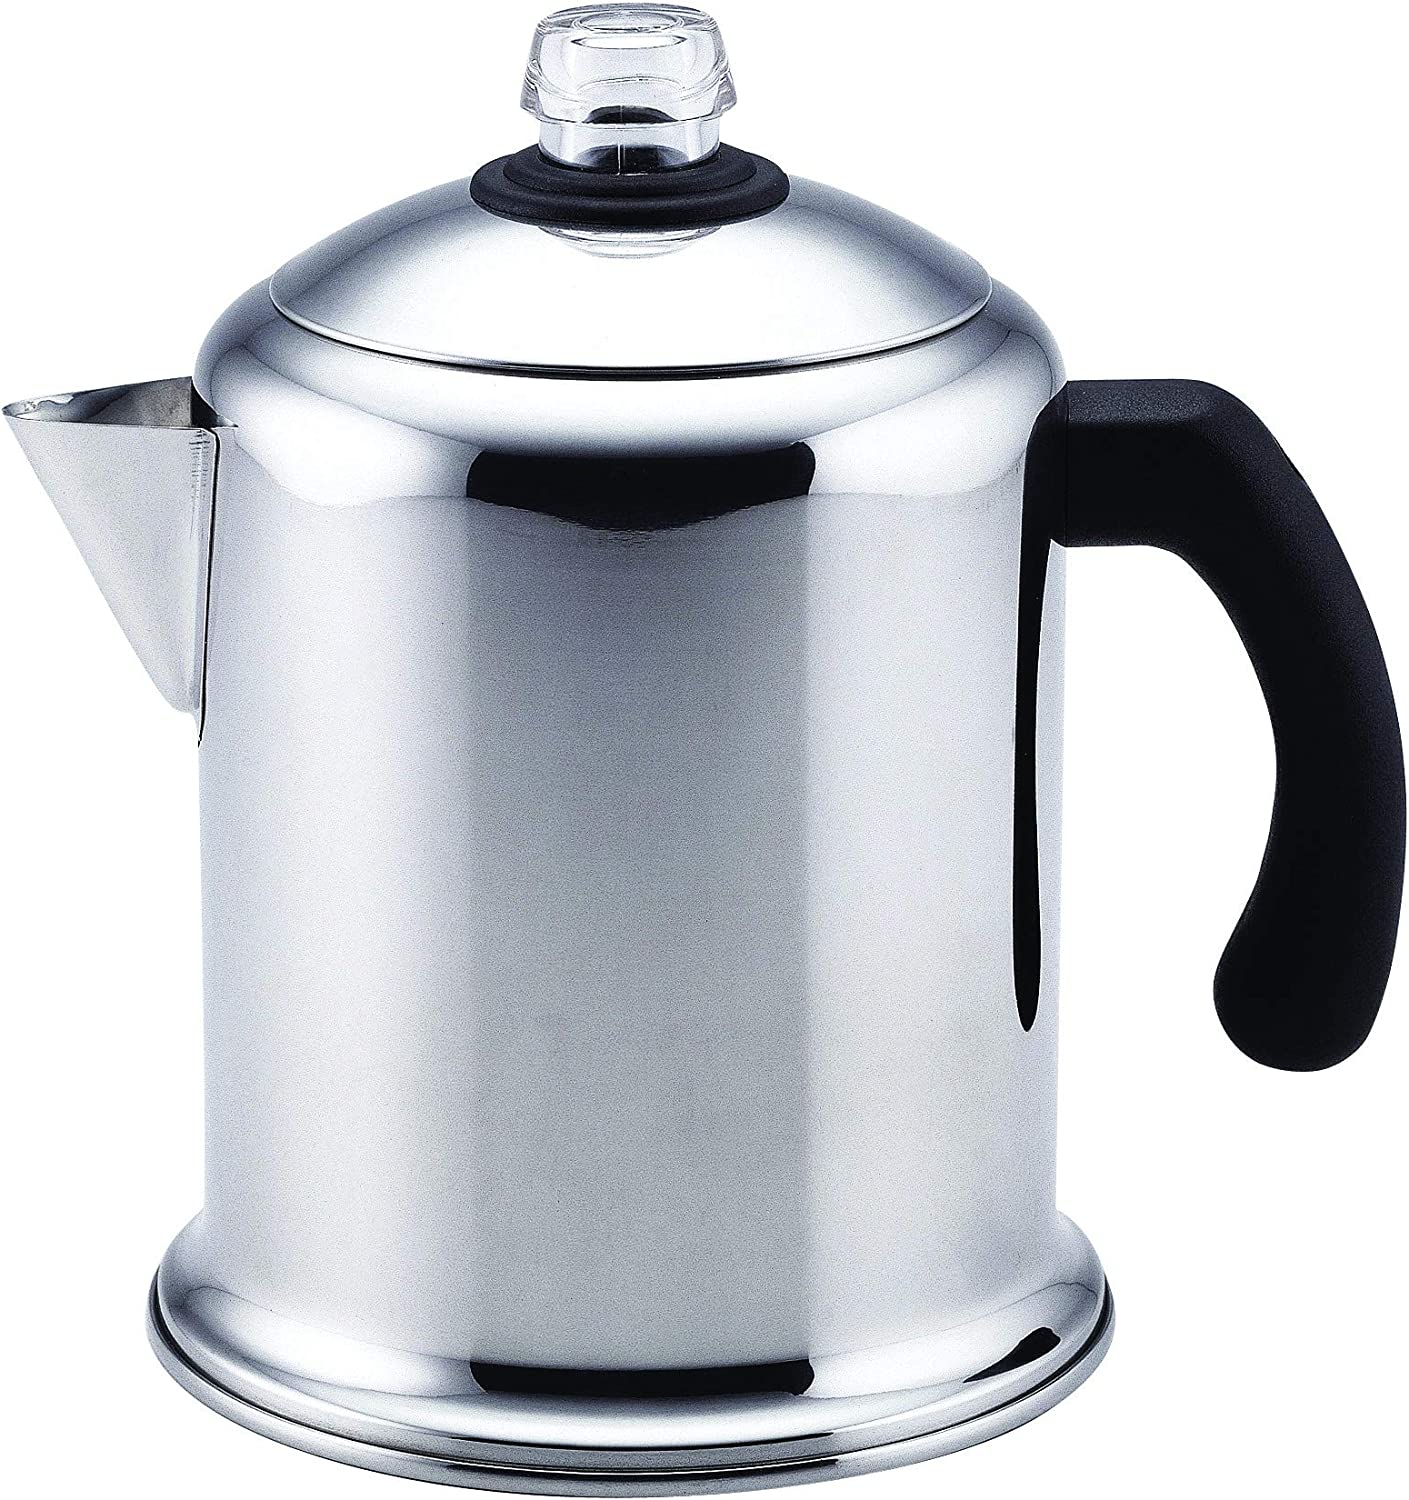 farberware classic stainless steel stovetop percolator